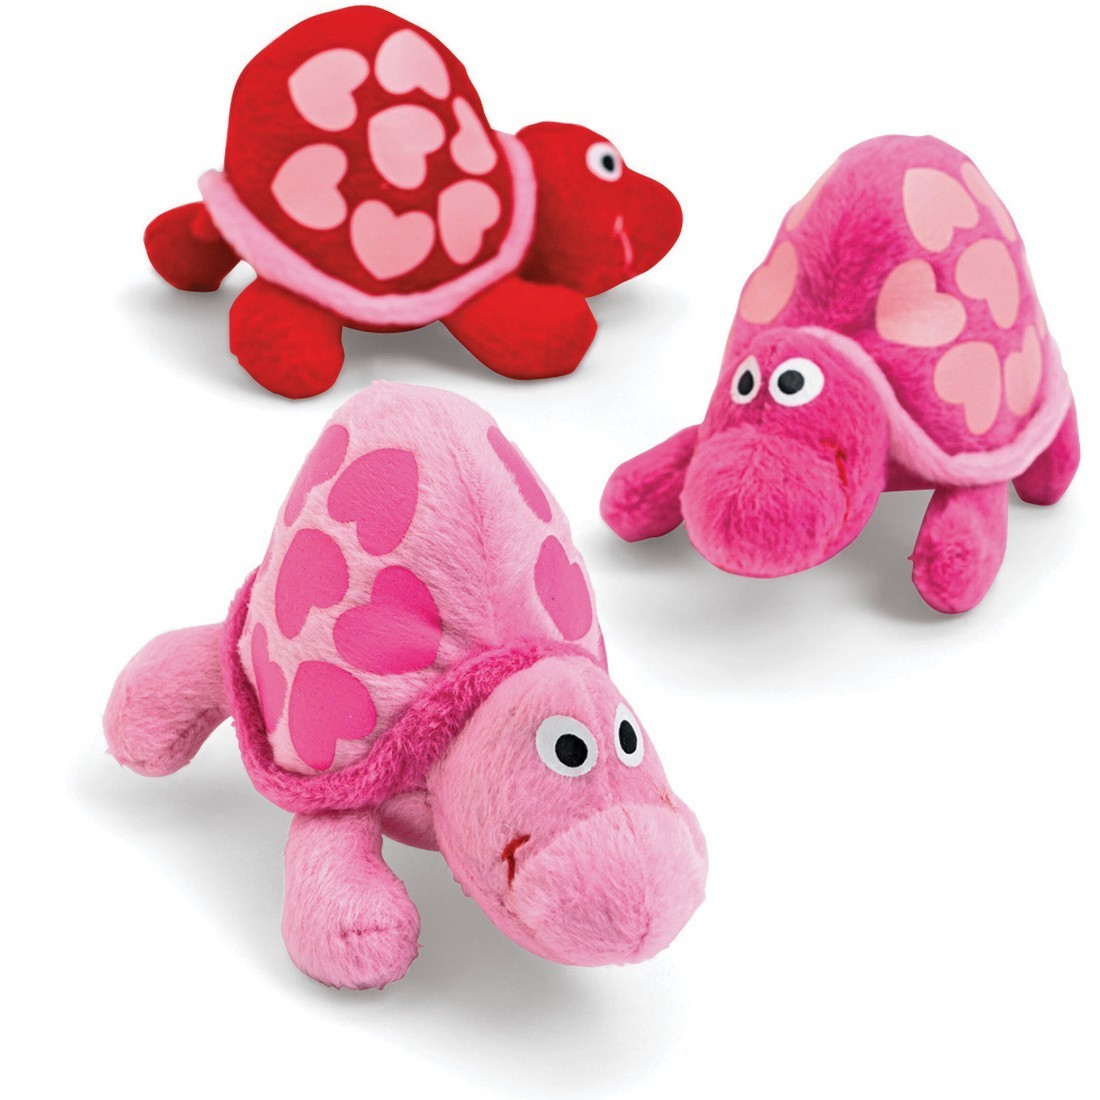 Plush Valentine Turtles [image]